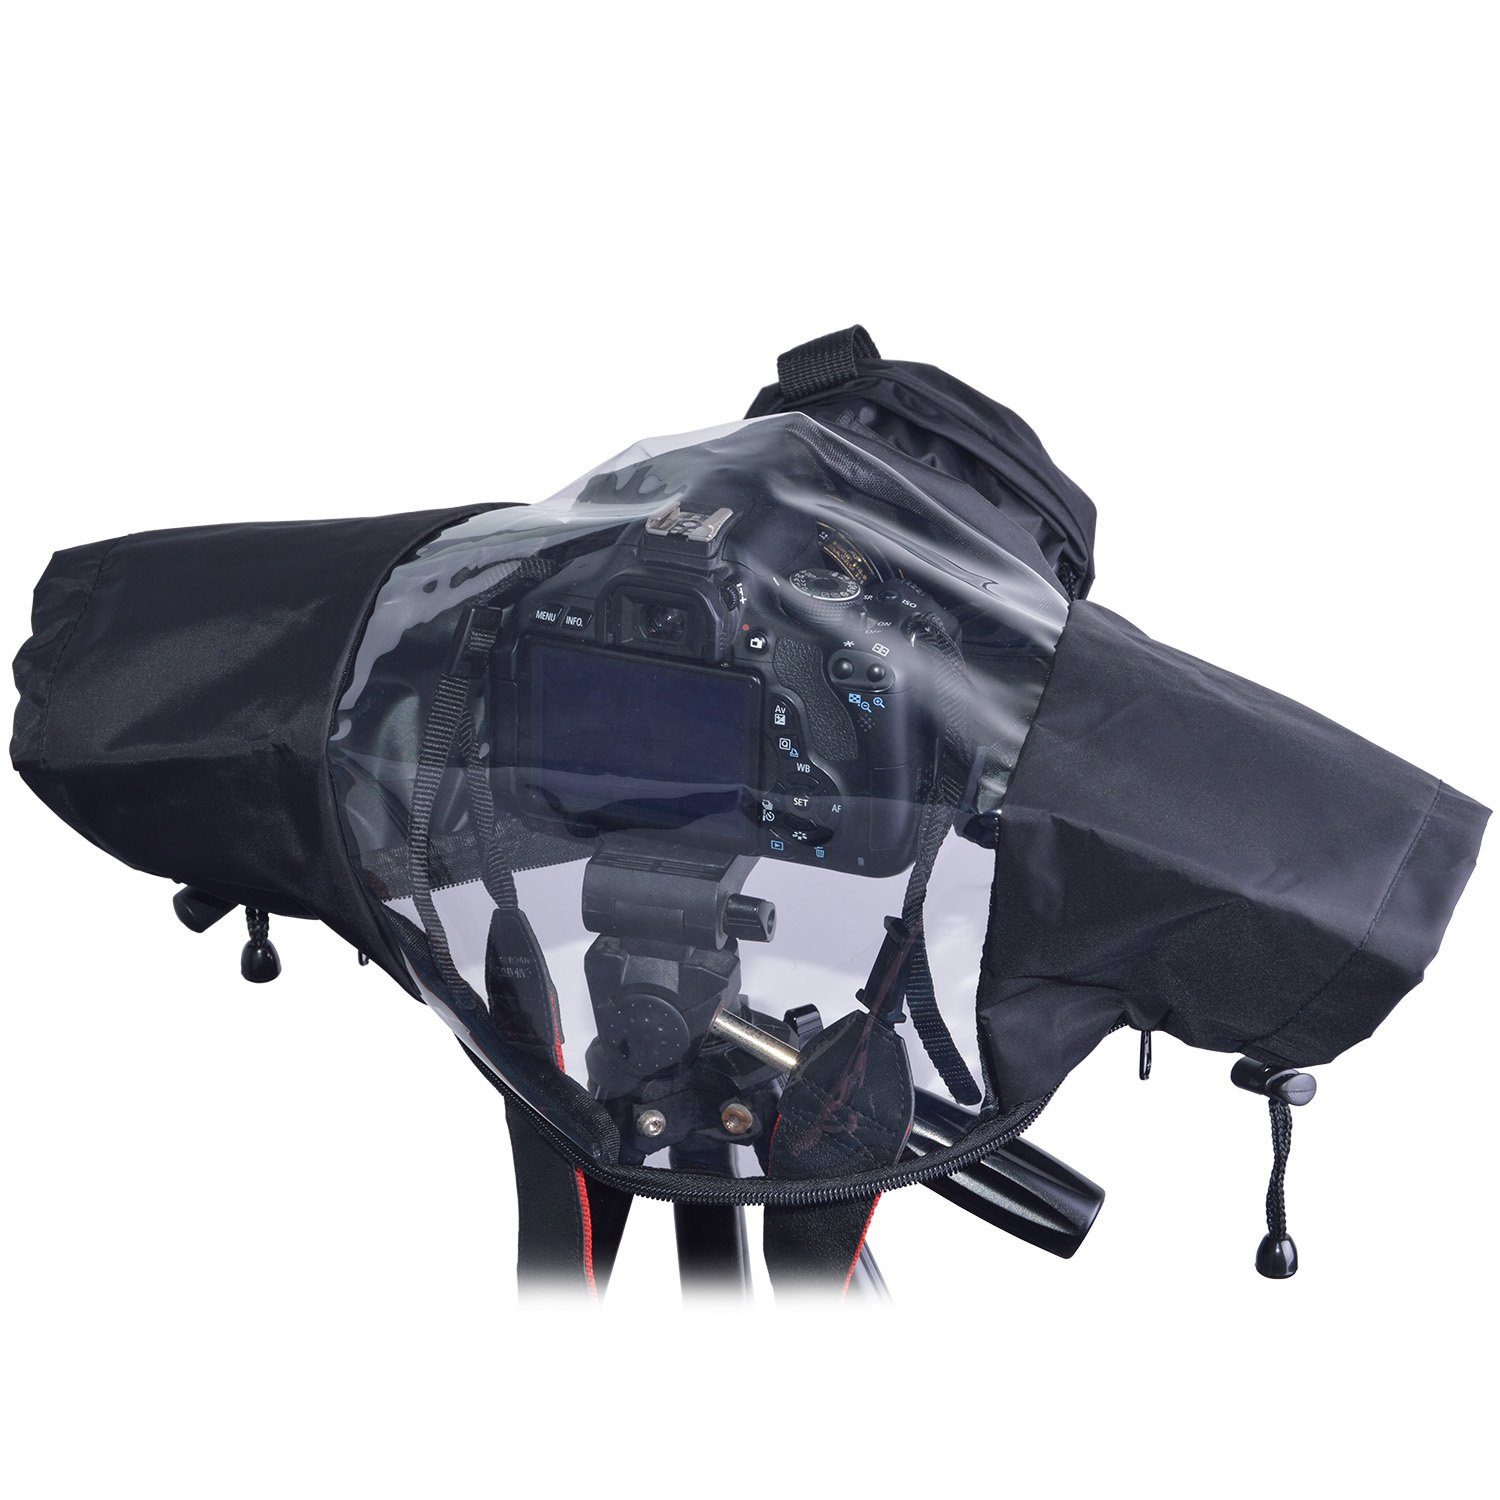 Custodia waterproof per fotocamera